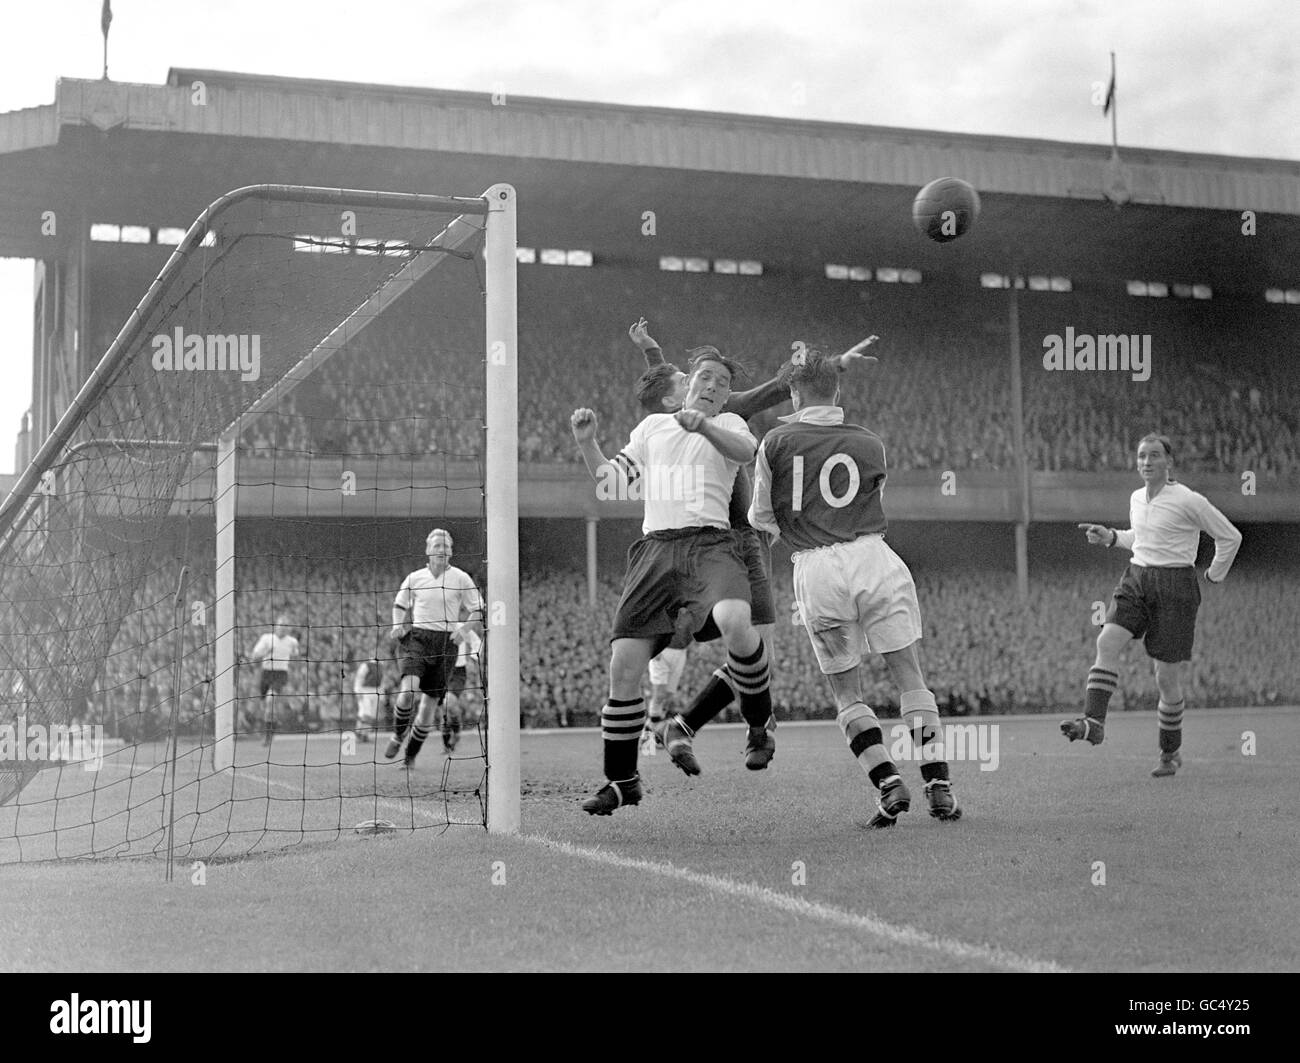 Soccer - League Division One - Newcastle v Aston Villa - St.James' Park - Newcastle - 1948 - Stock Image